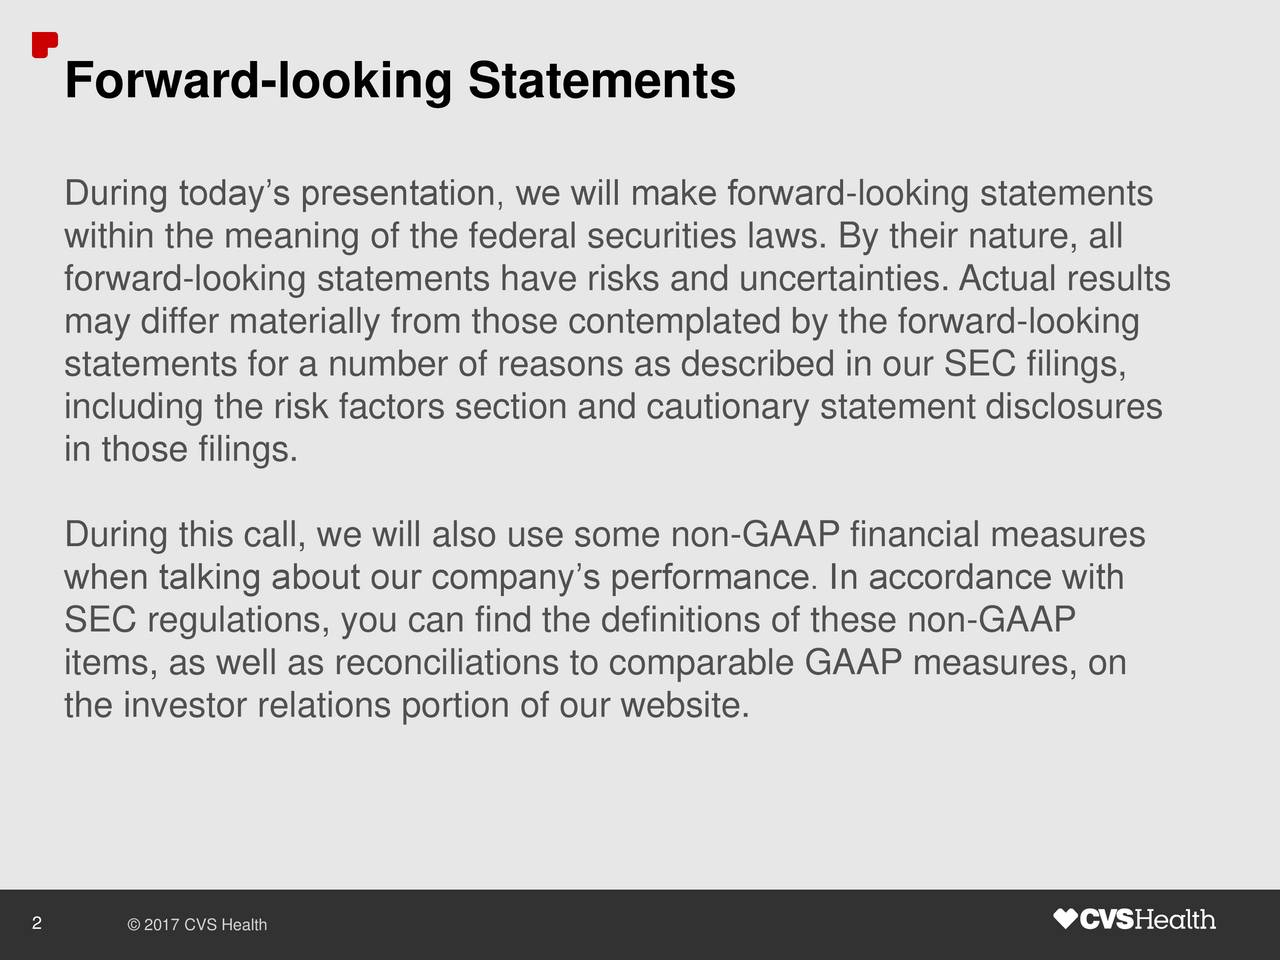 During todays presentation, we will make forward-looking statements within the meaning of the federal securities laws. By their nature, all forward-looking statements have risks and uncertainties. Actual results may differ materially from those contemplated by the forward-looking statements for a number of reasons as described in our SEC filings, including the risk factors section and cautionary statement disclosures in those filings. During this call, we will also use some non-GAAP financial measures when talking about our companys performance. In accordance with SEC regulations, you can find the definitions of these non-GAAP items, as well as reconciliations to comparable GAAP measures, on the investor relations portion of our website. 2  2017 CVS Health